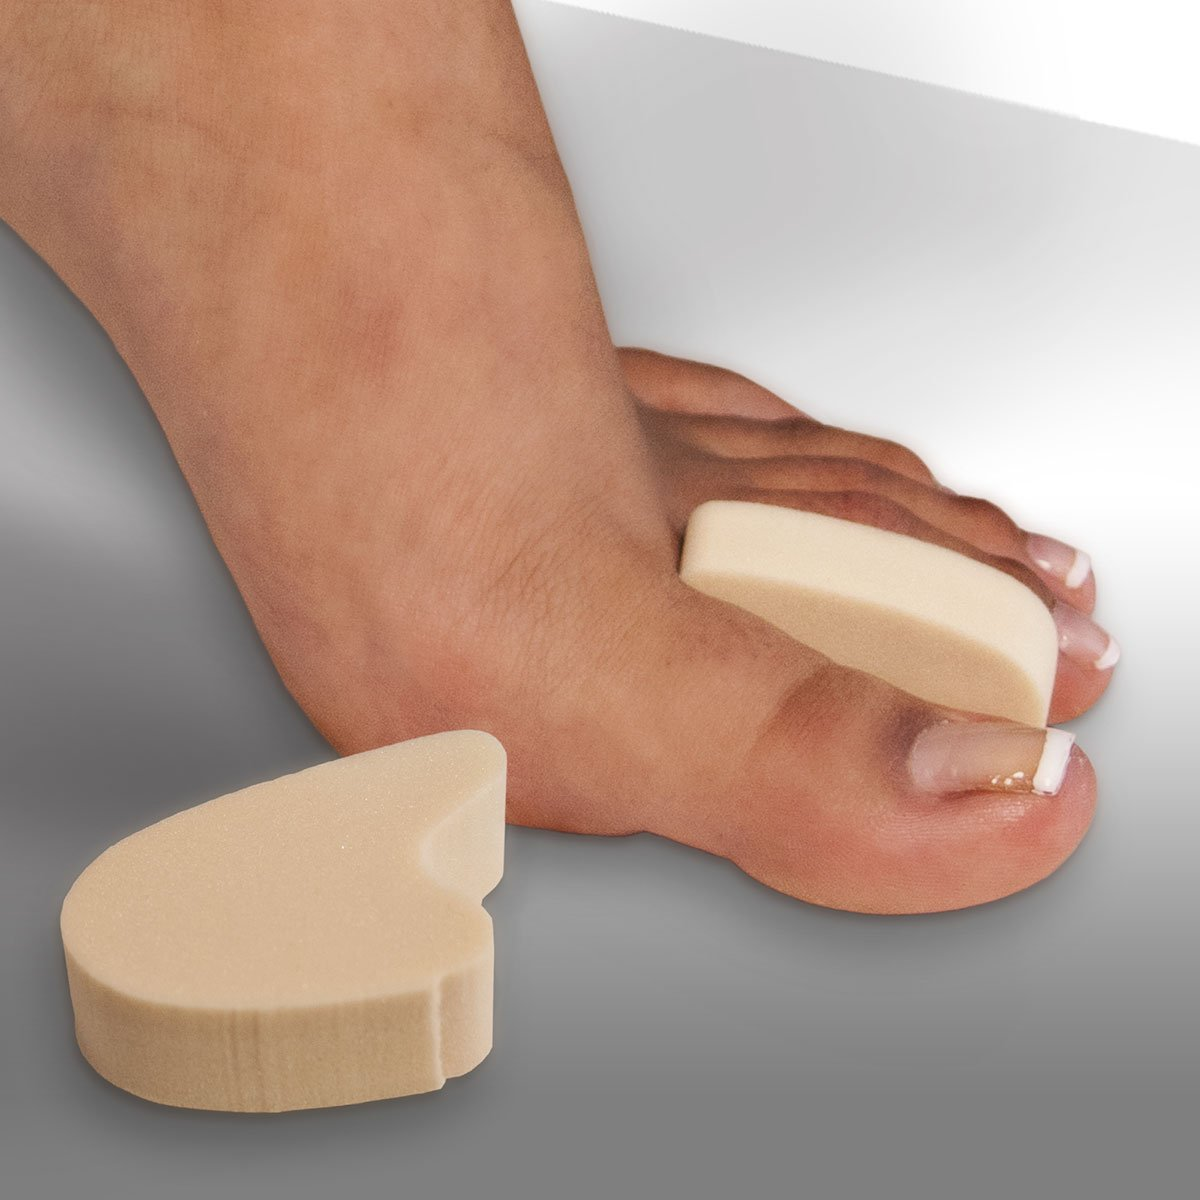 Toe Separator - Large - Firm